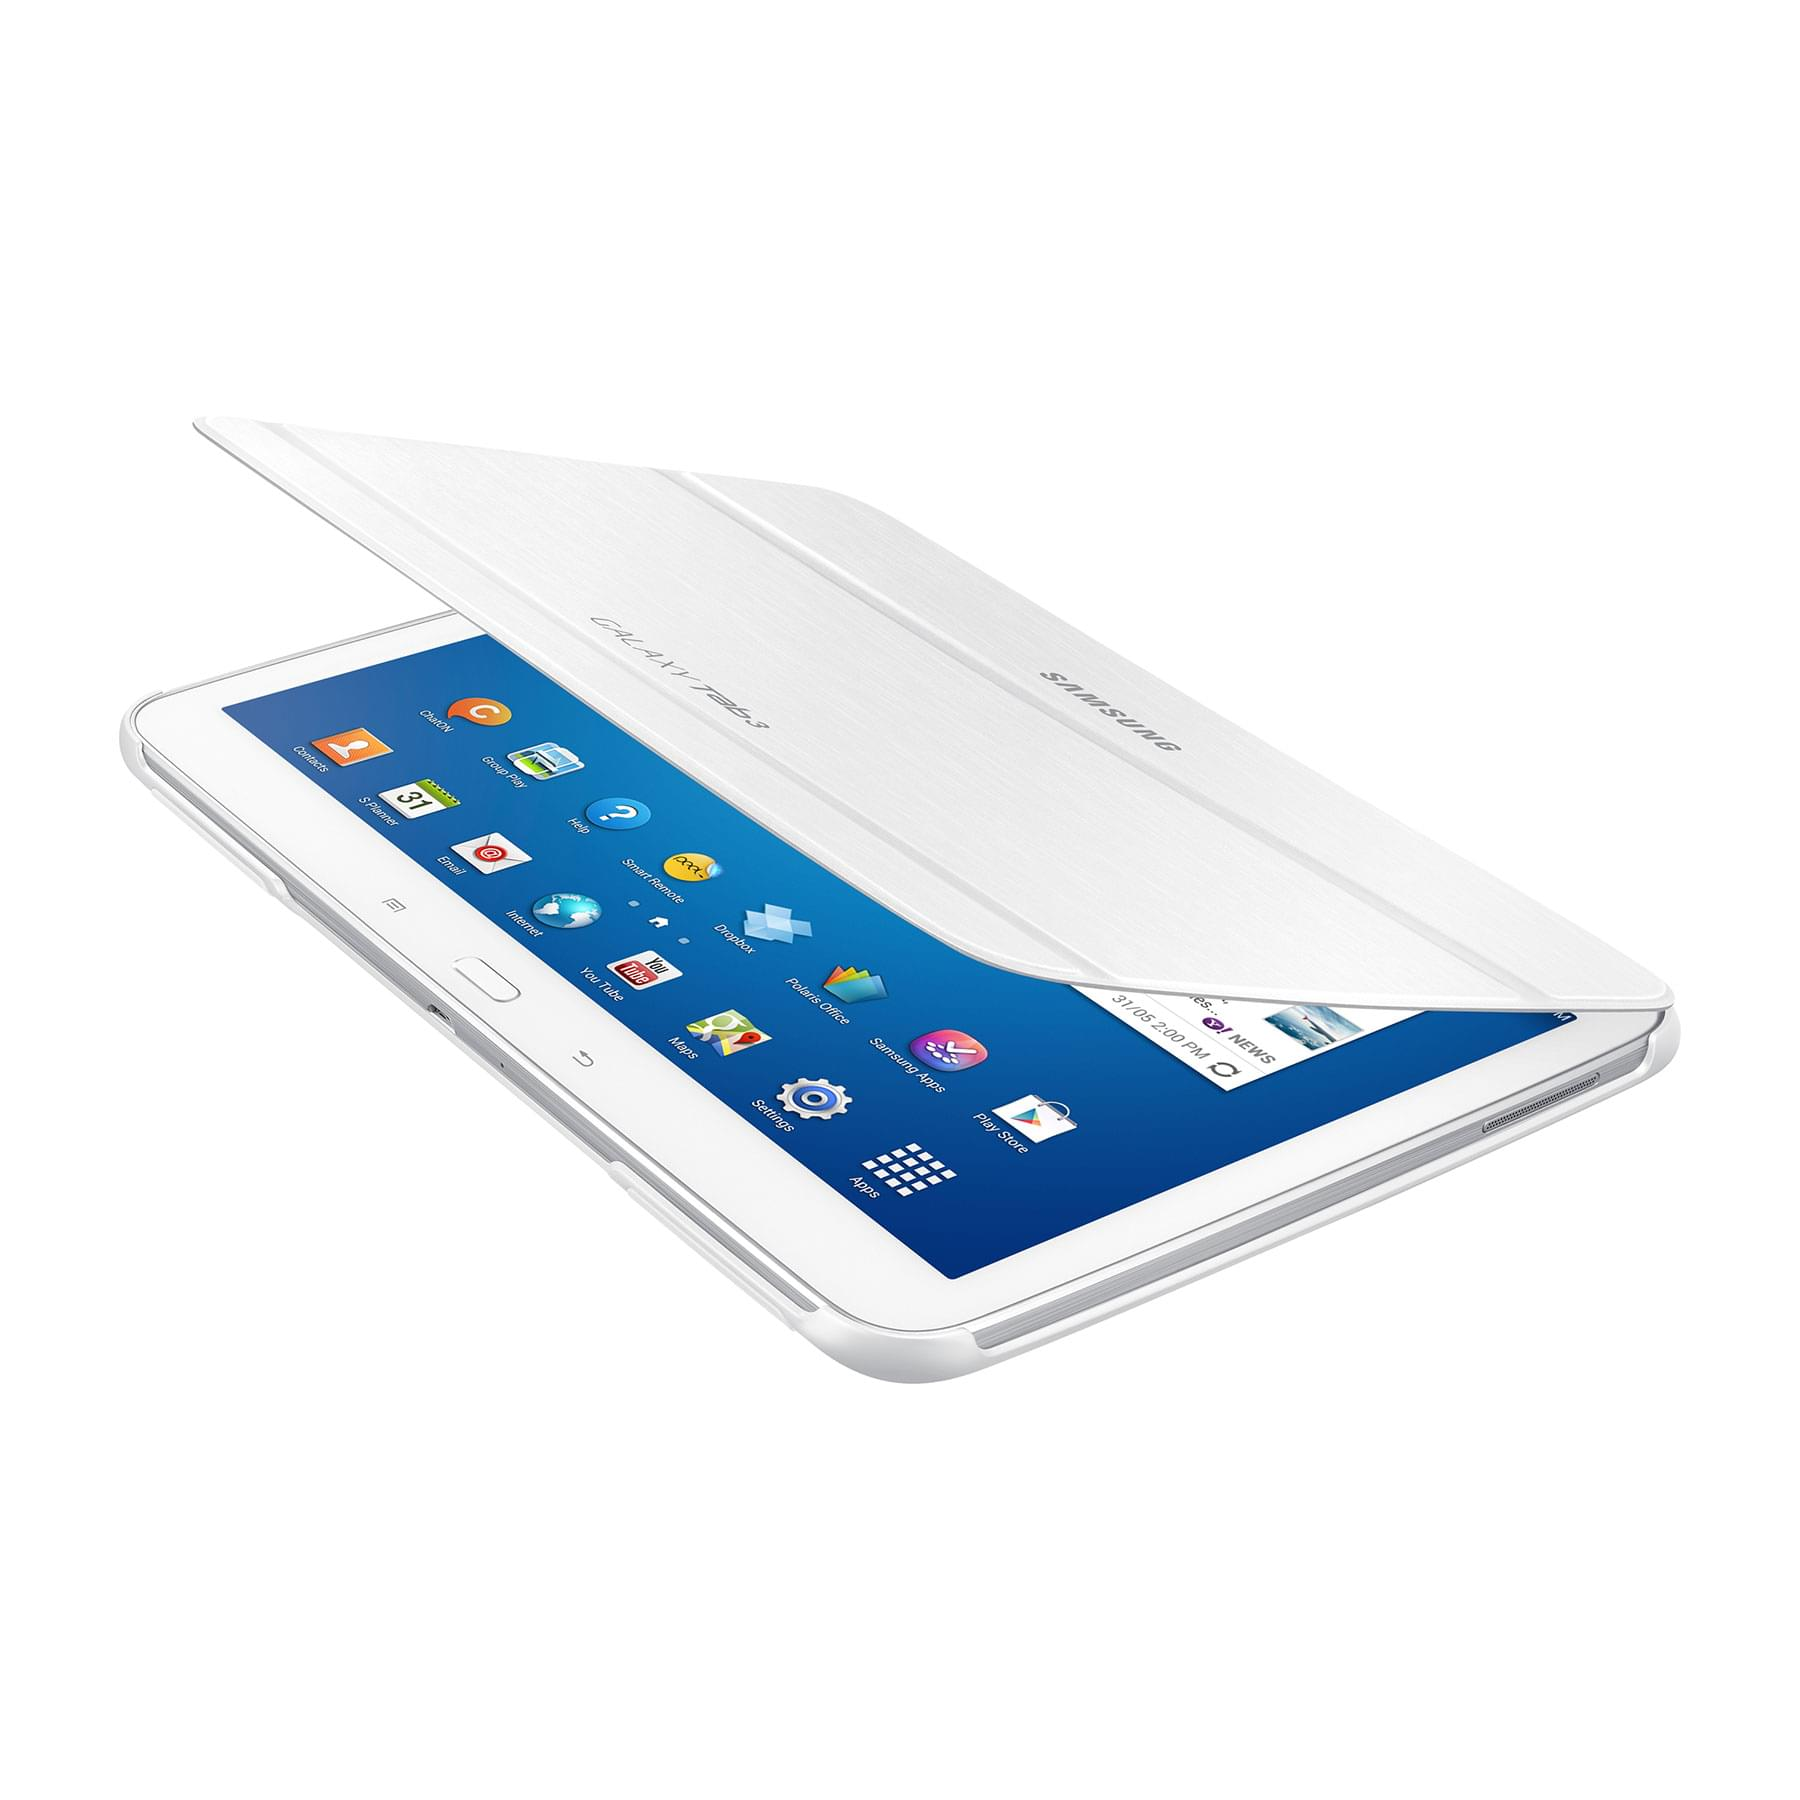 "Etui Book Cover Galaxy Tab 3 10.1"" White - Accessoire tablette - 0"